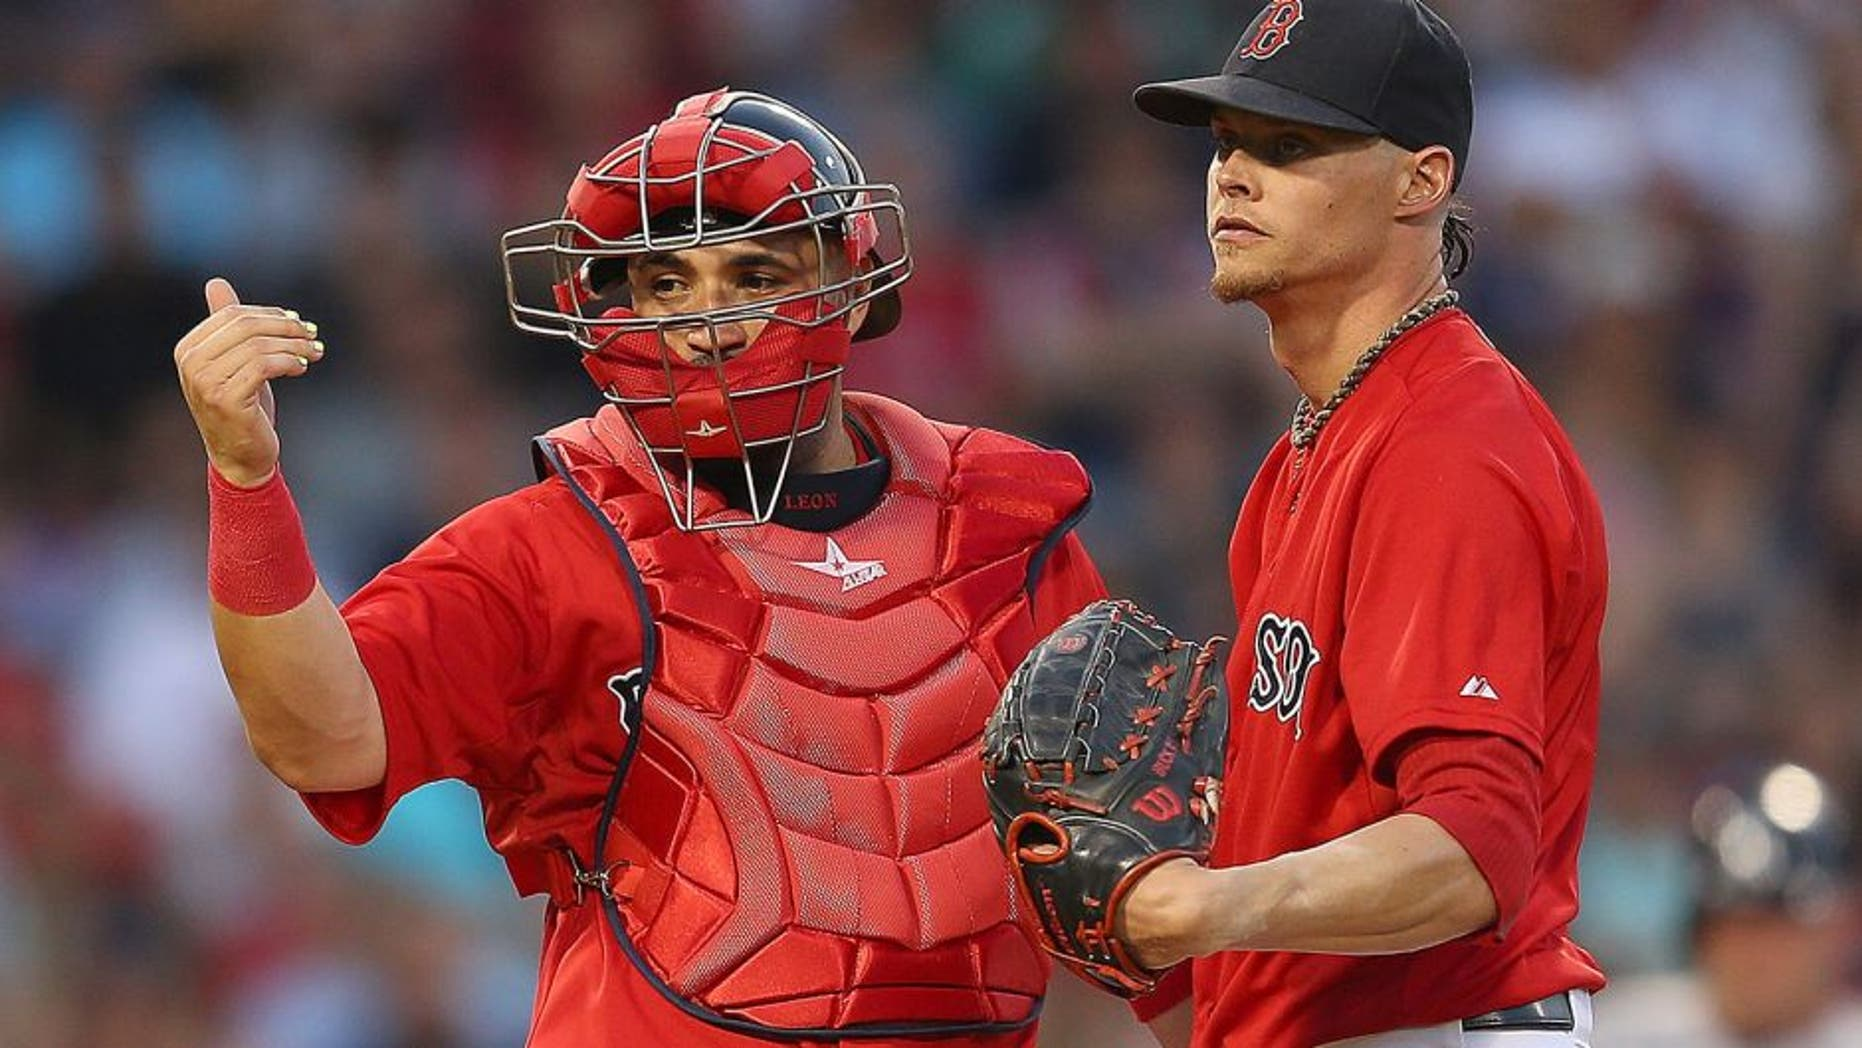 BOSTON, MA - JULY 10: Sandy Leon #3 of the Boston Red Sox signals to the dugout as Clay Buchholz #11 reacts on the mound in the fourth inning New York Yankees at Fenway Park on July 10, 2015 in Boston, Massachusetts. Buchholz left the game moments later. (Photo by Jim Rogash/Getty Images)